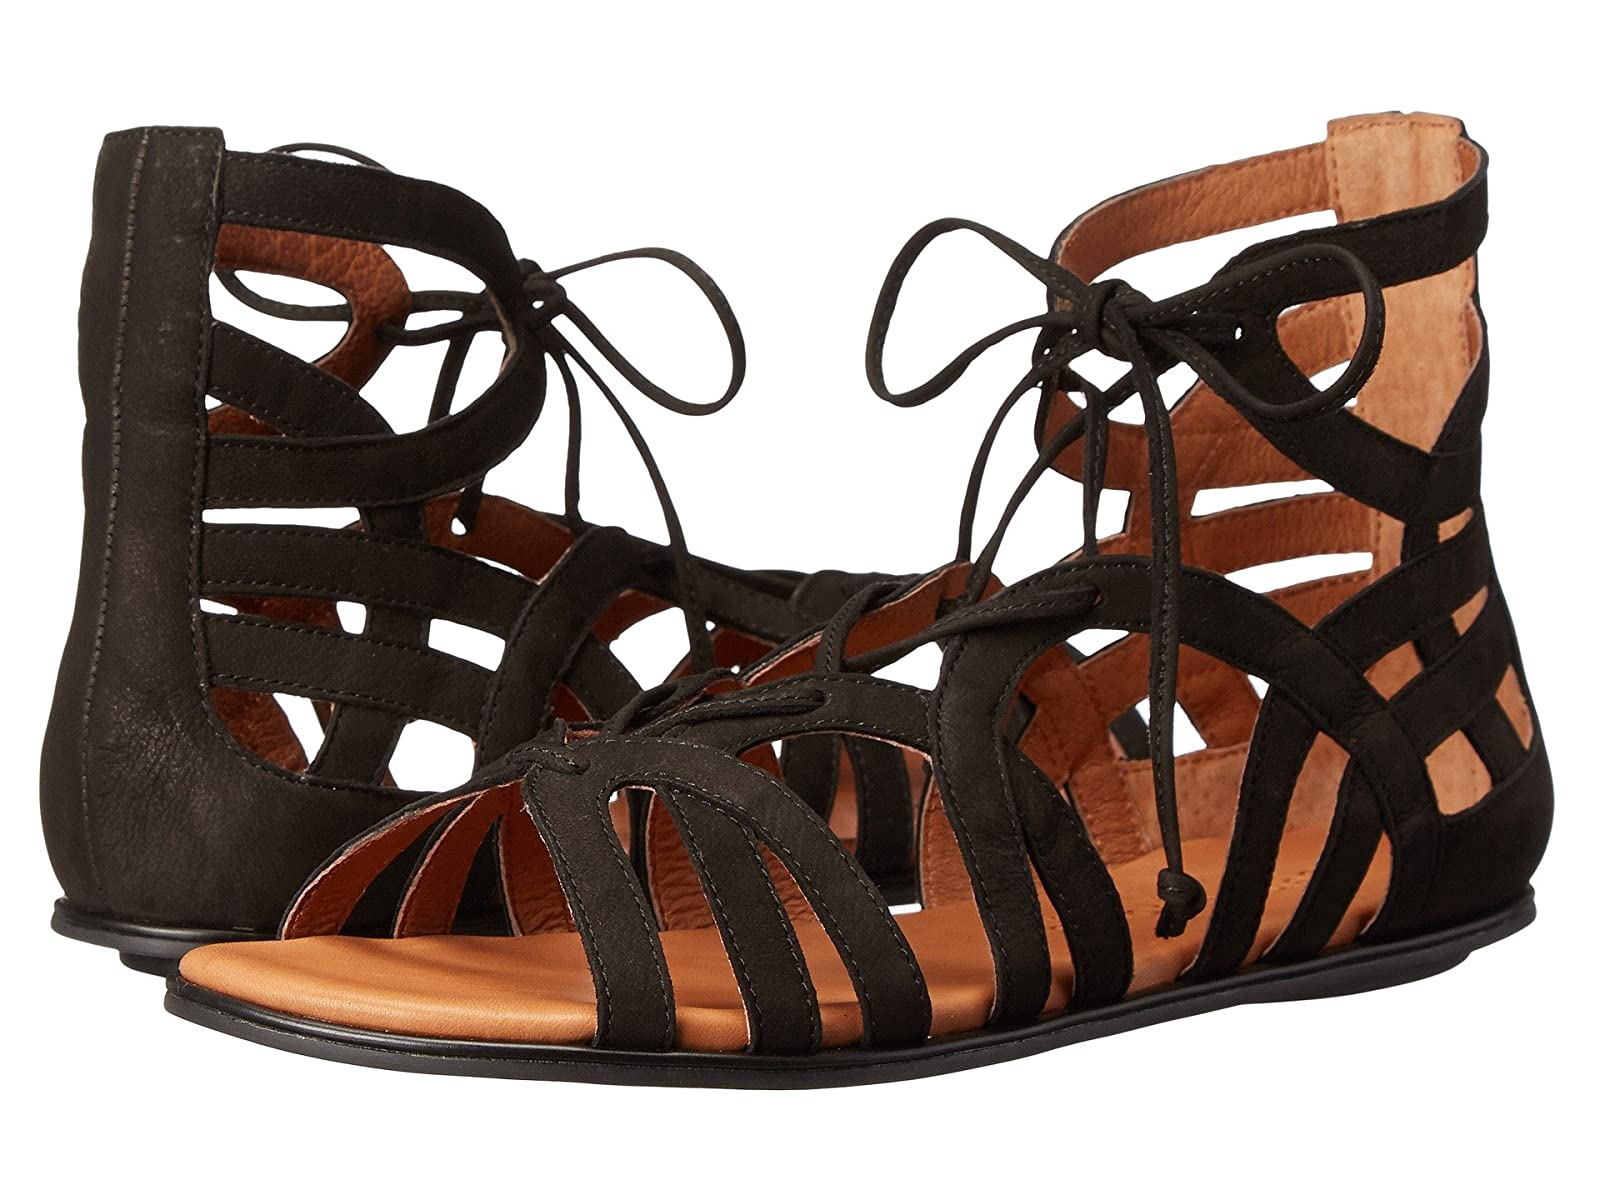 Gentle Souls by Kenneth Cole Break My Heart 3Atmospheric grades have affordable shoes